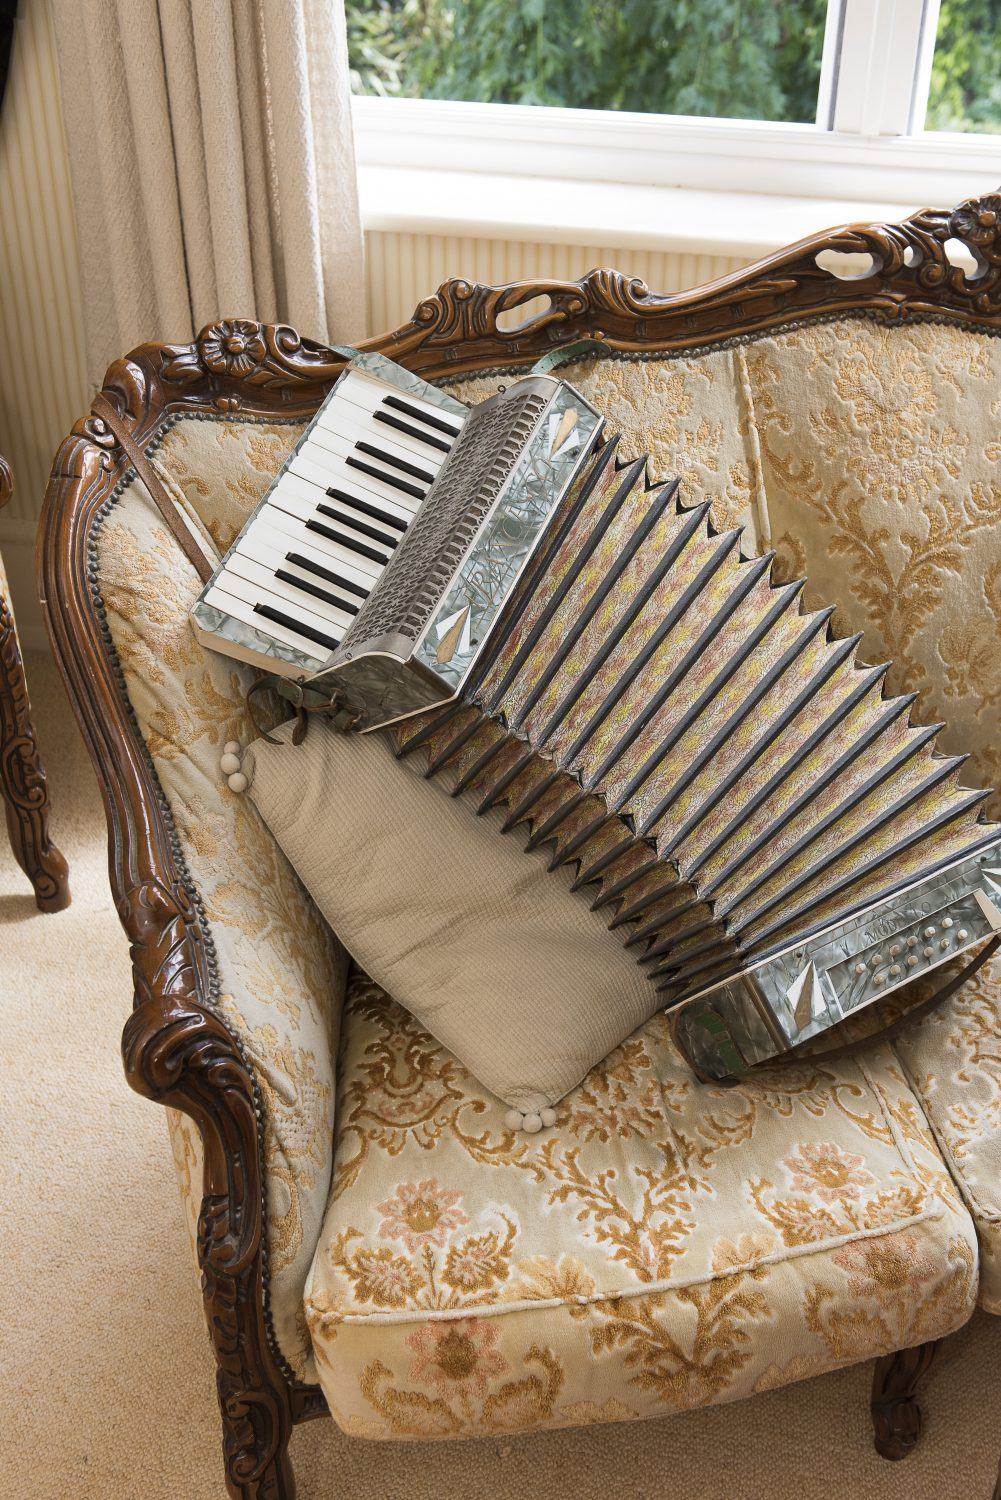 A piano accordion left over from a recent production